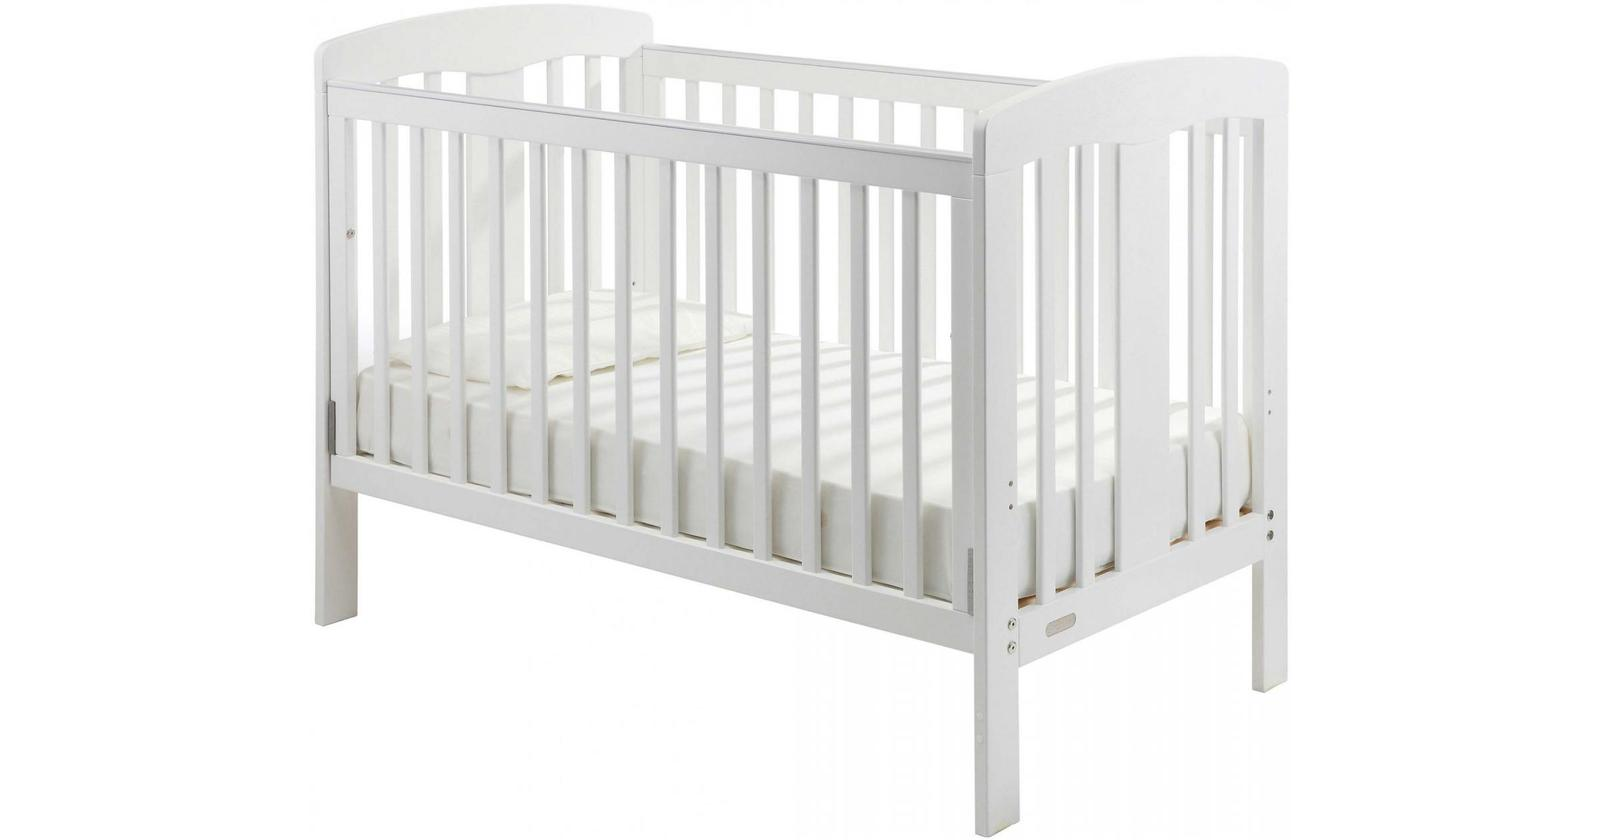 l and best on beds pinterest baby cribs about larger bed view ideas